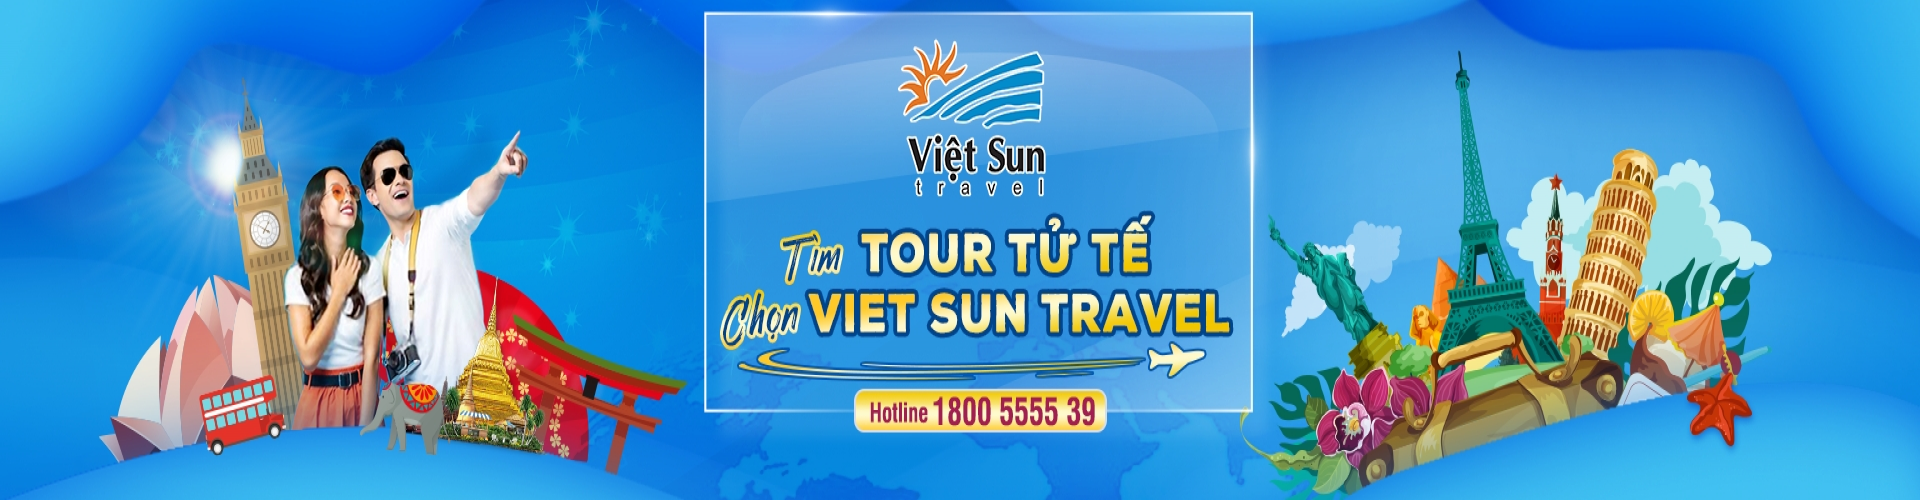 Slogan Viet Sun Travel